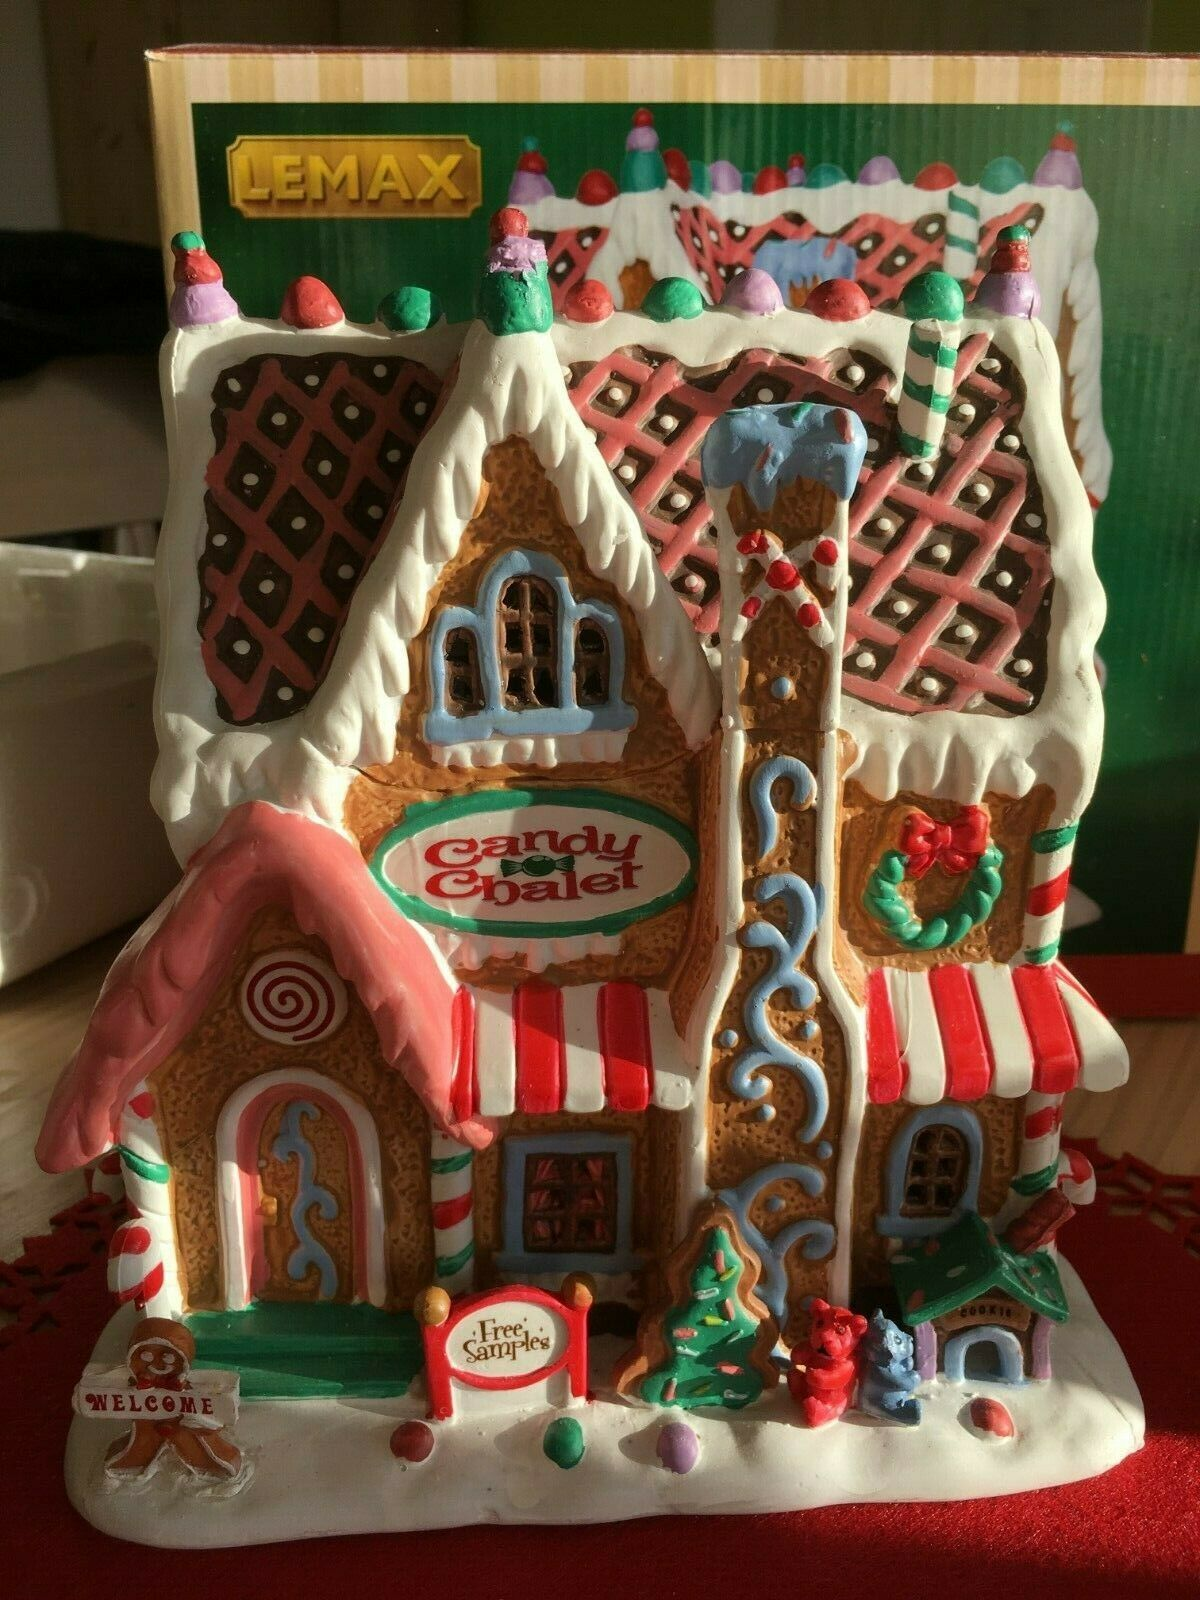 45771 45771 45771 Lemax Village Collection Candyhaus Candy Chalet Gingerbread House 9126e6